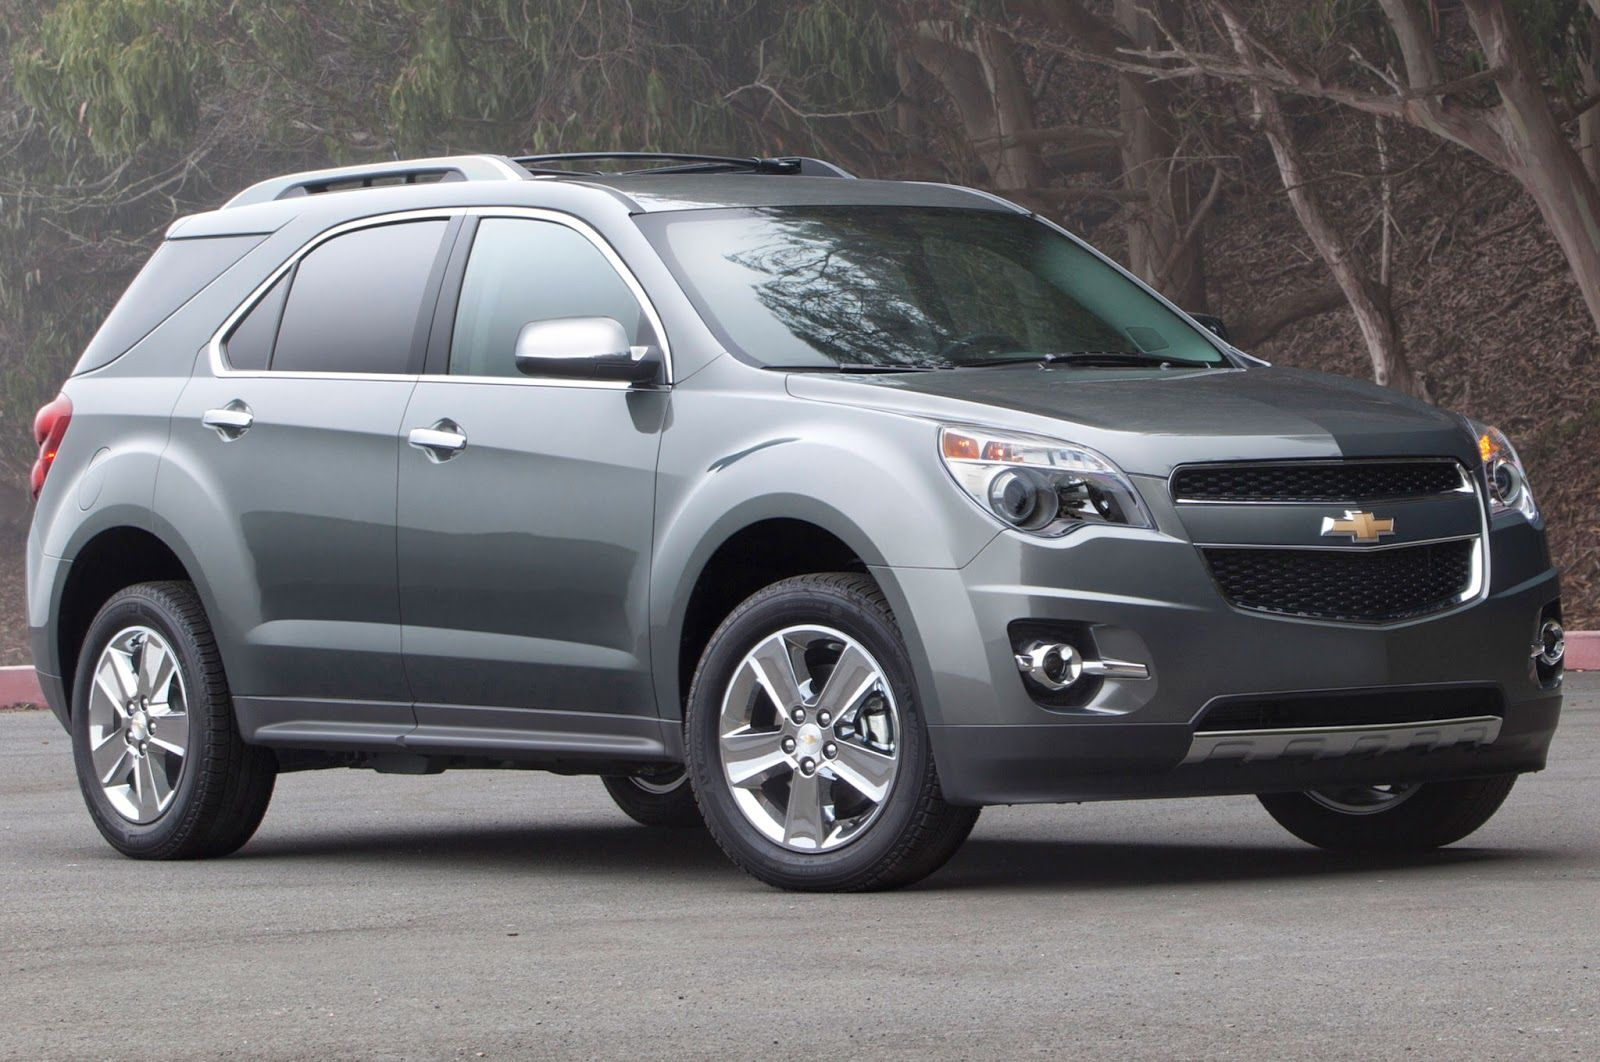 The 25 best 2015 chevy equinox ideas on pinterest equinox chevy 2010 chevy equinox and chevrolet equinox